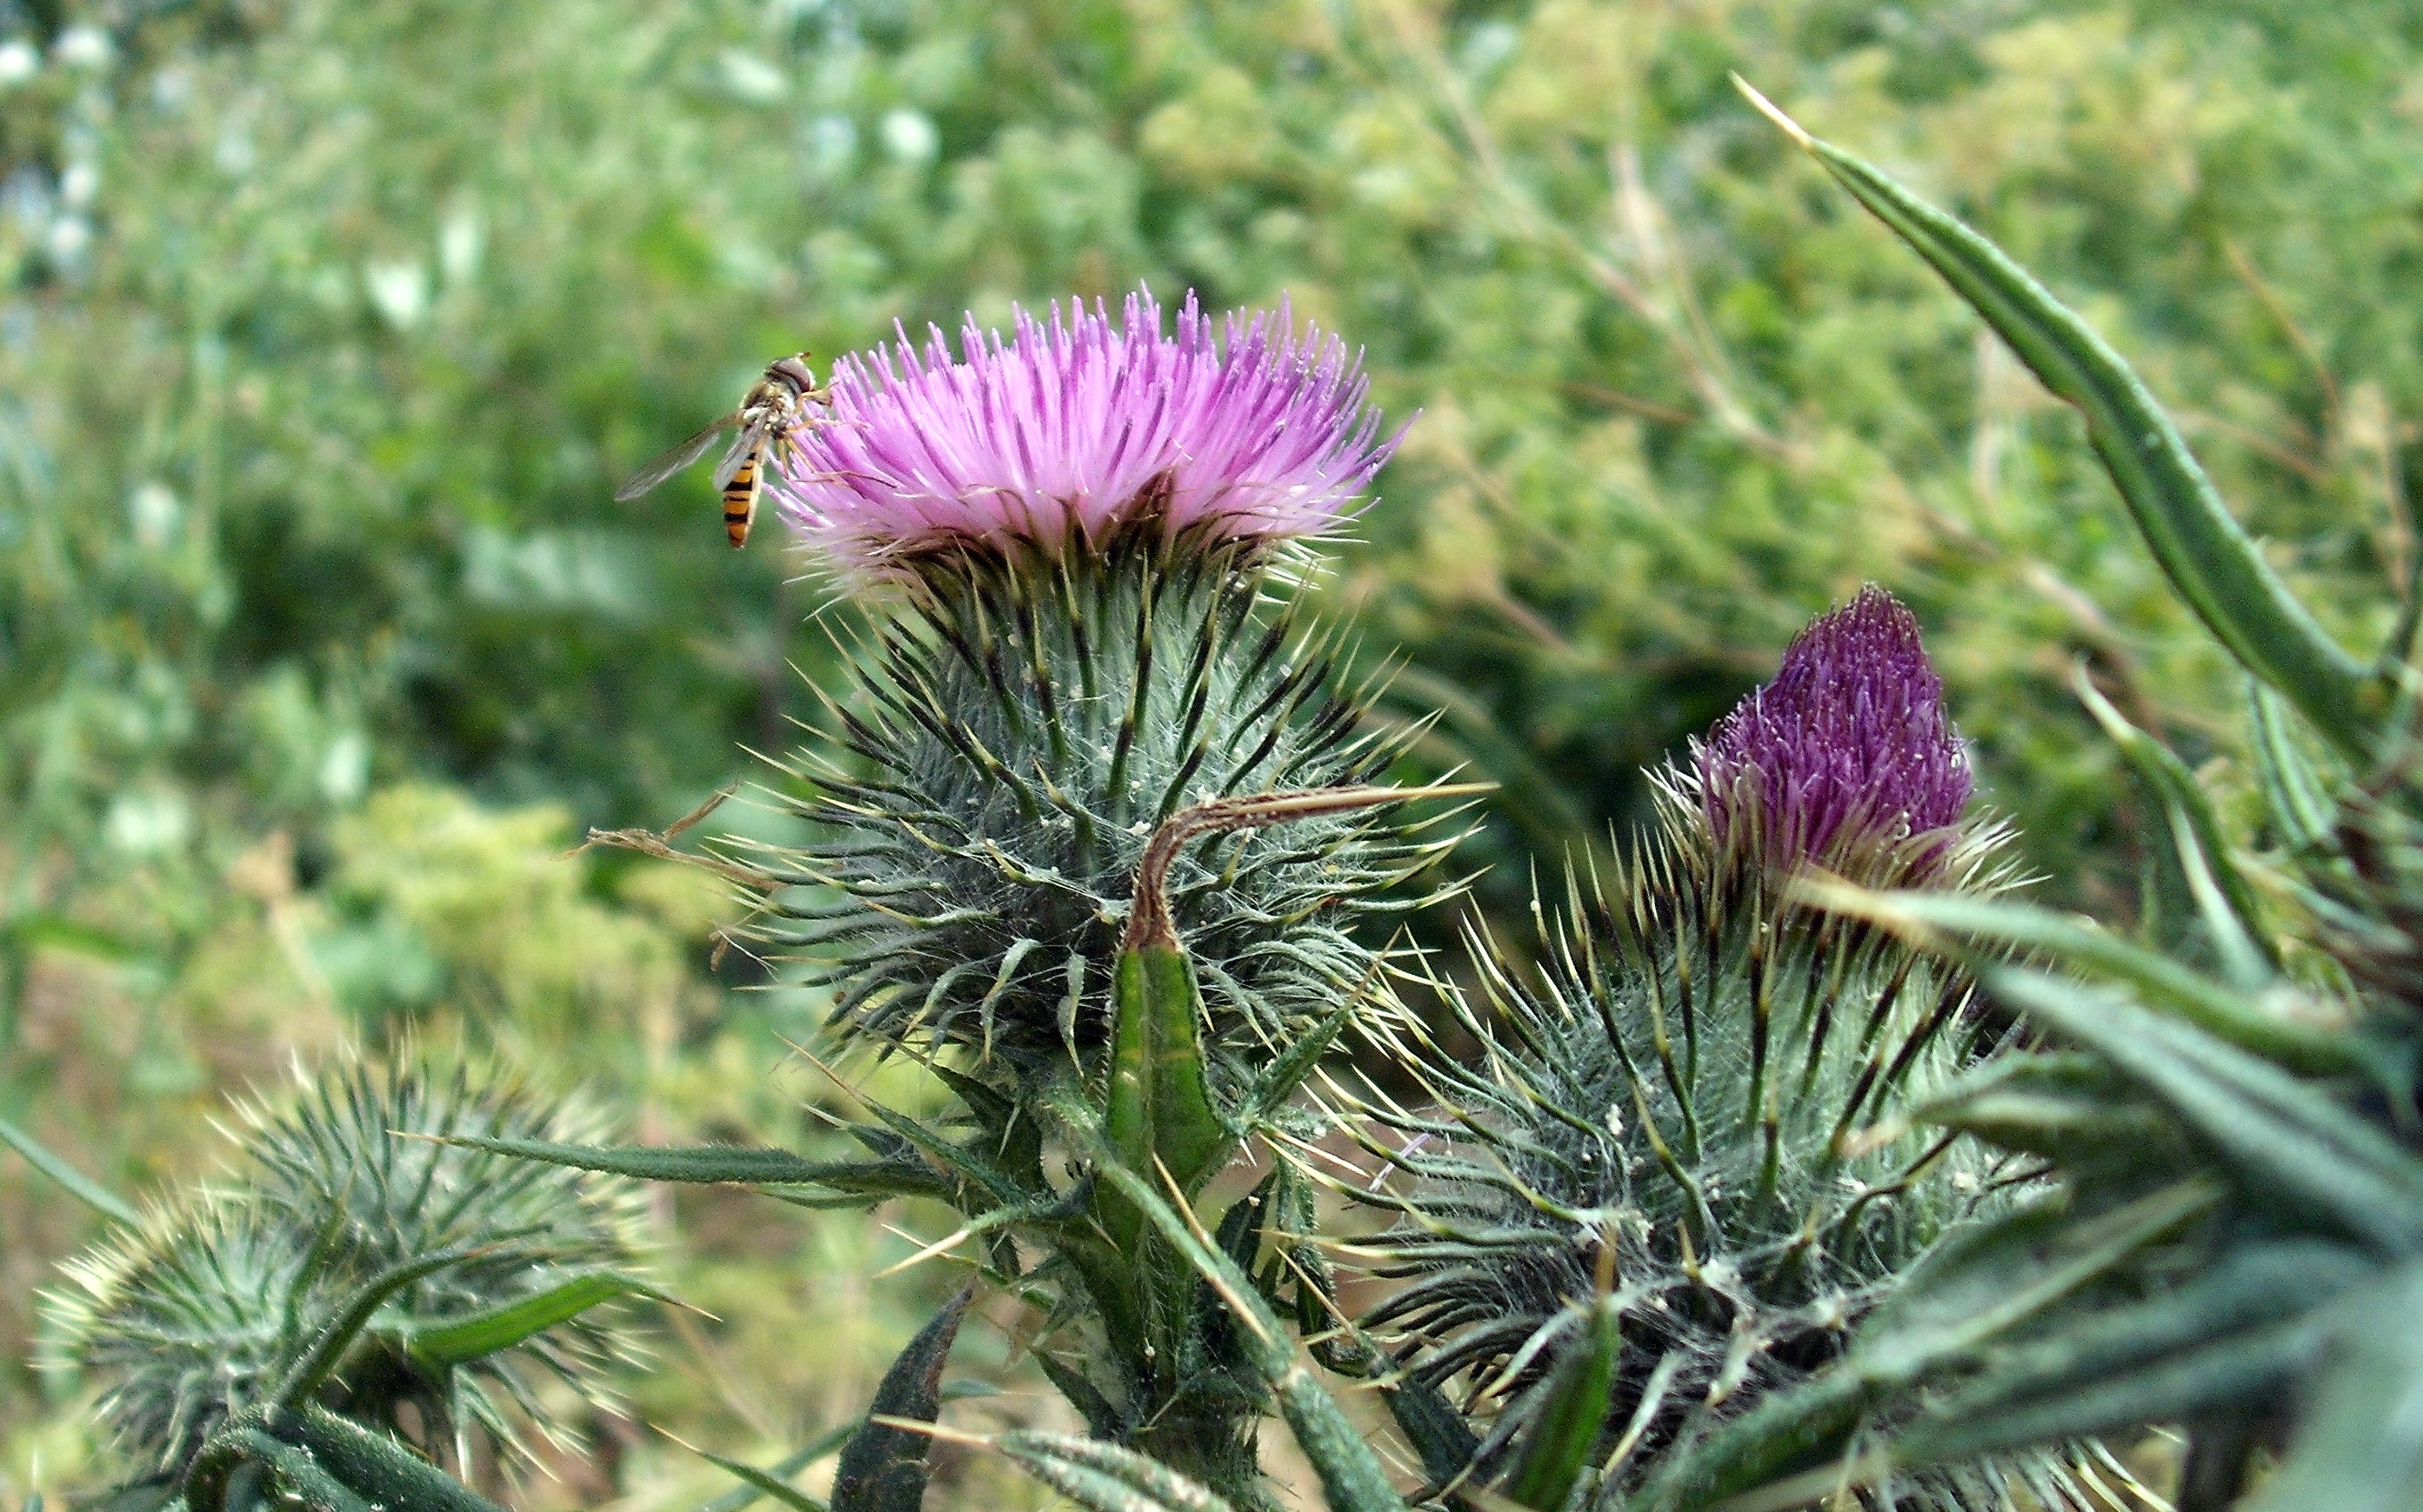 A Hoverfly on a Thistle